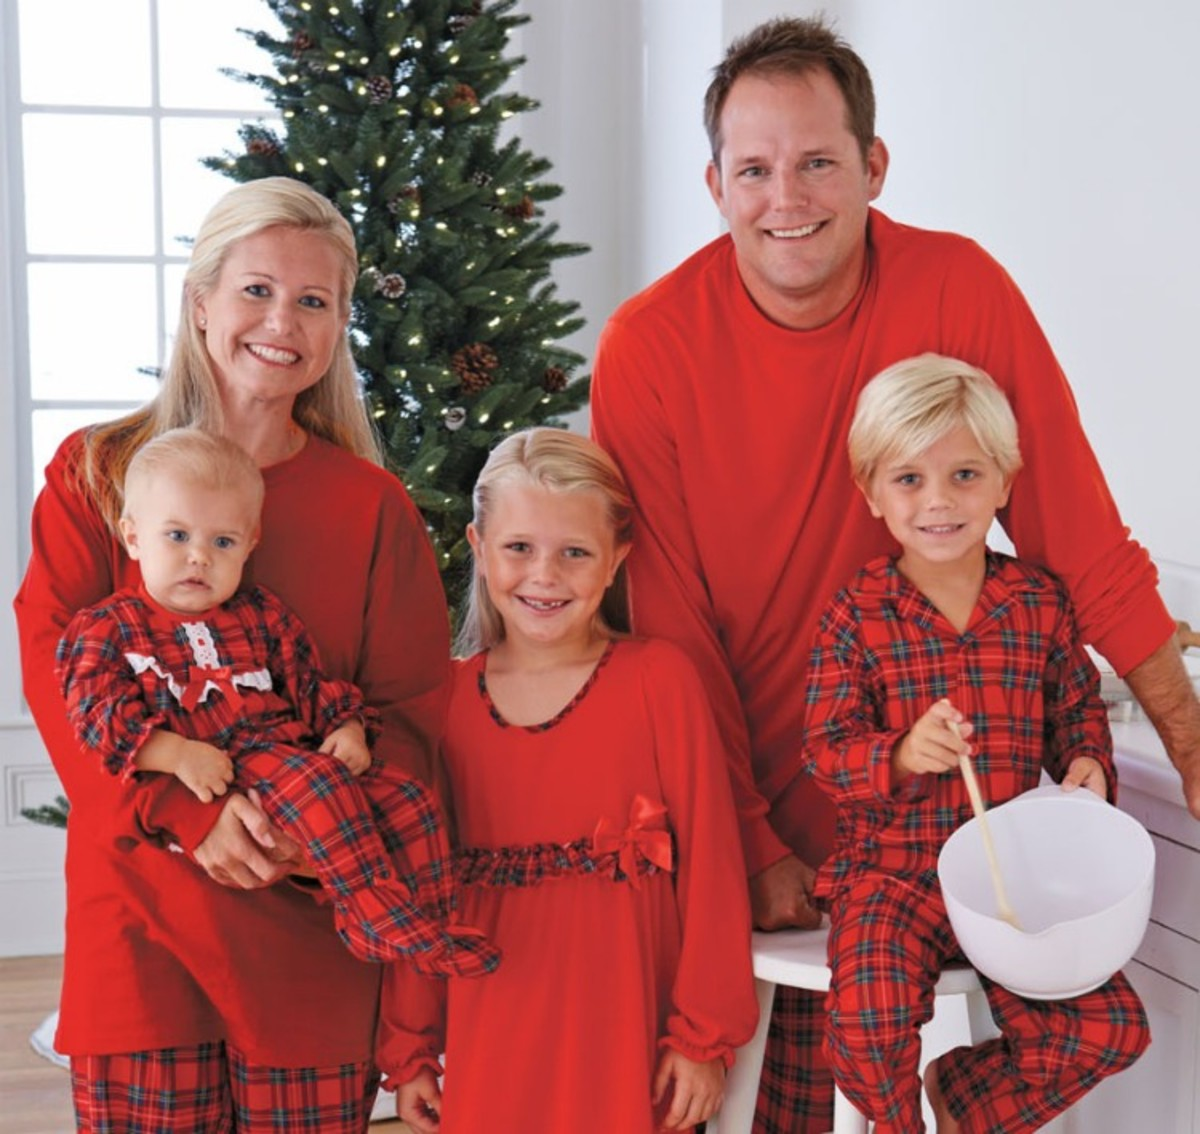 Family Christmas Pajamas Affordable - Christmas Decor And Lights